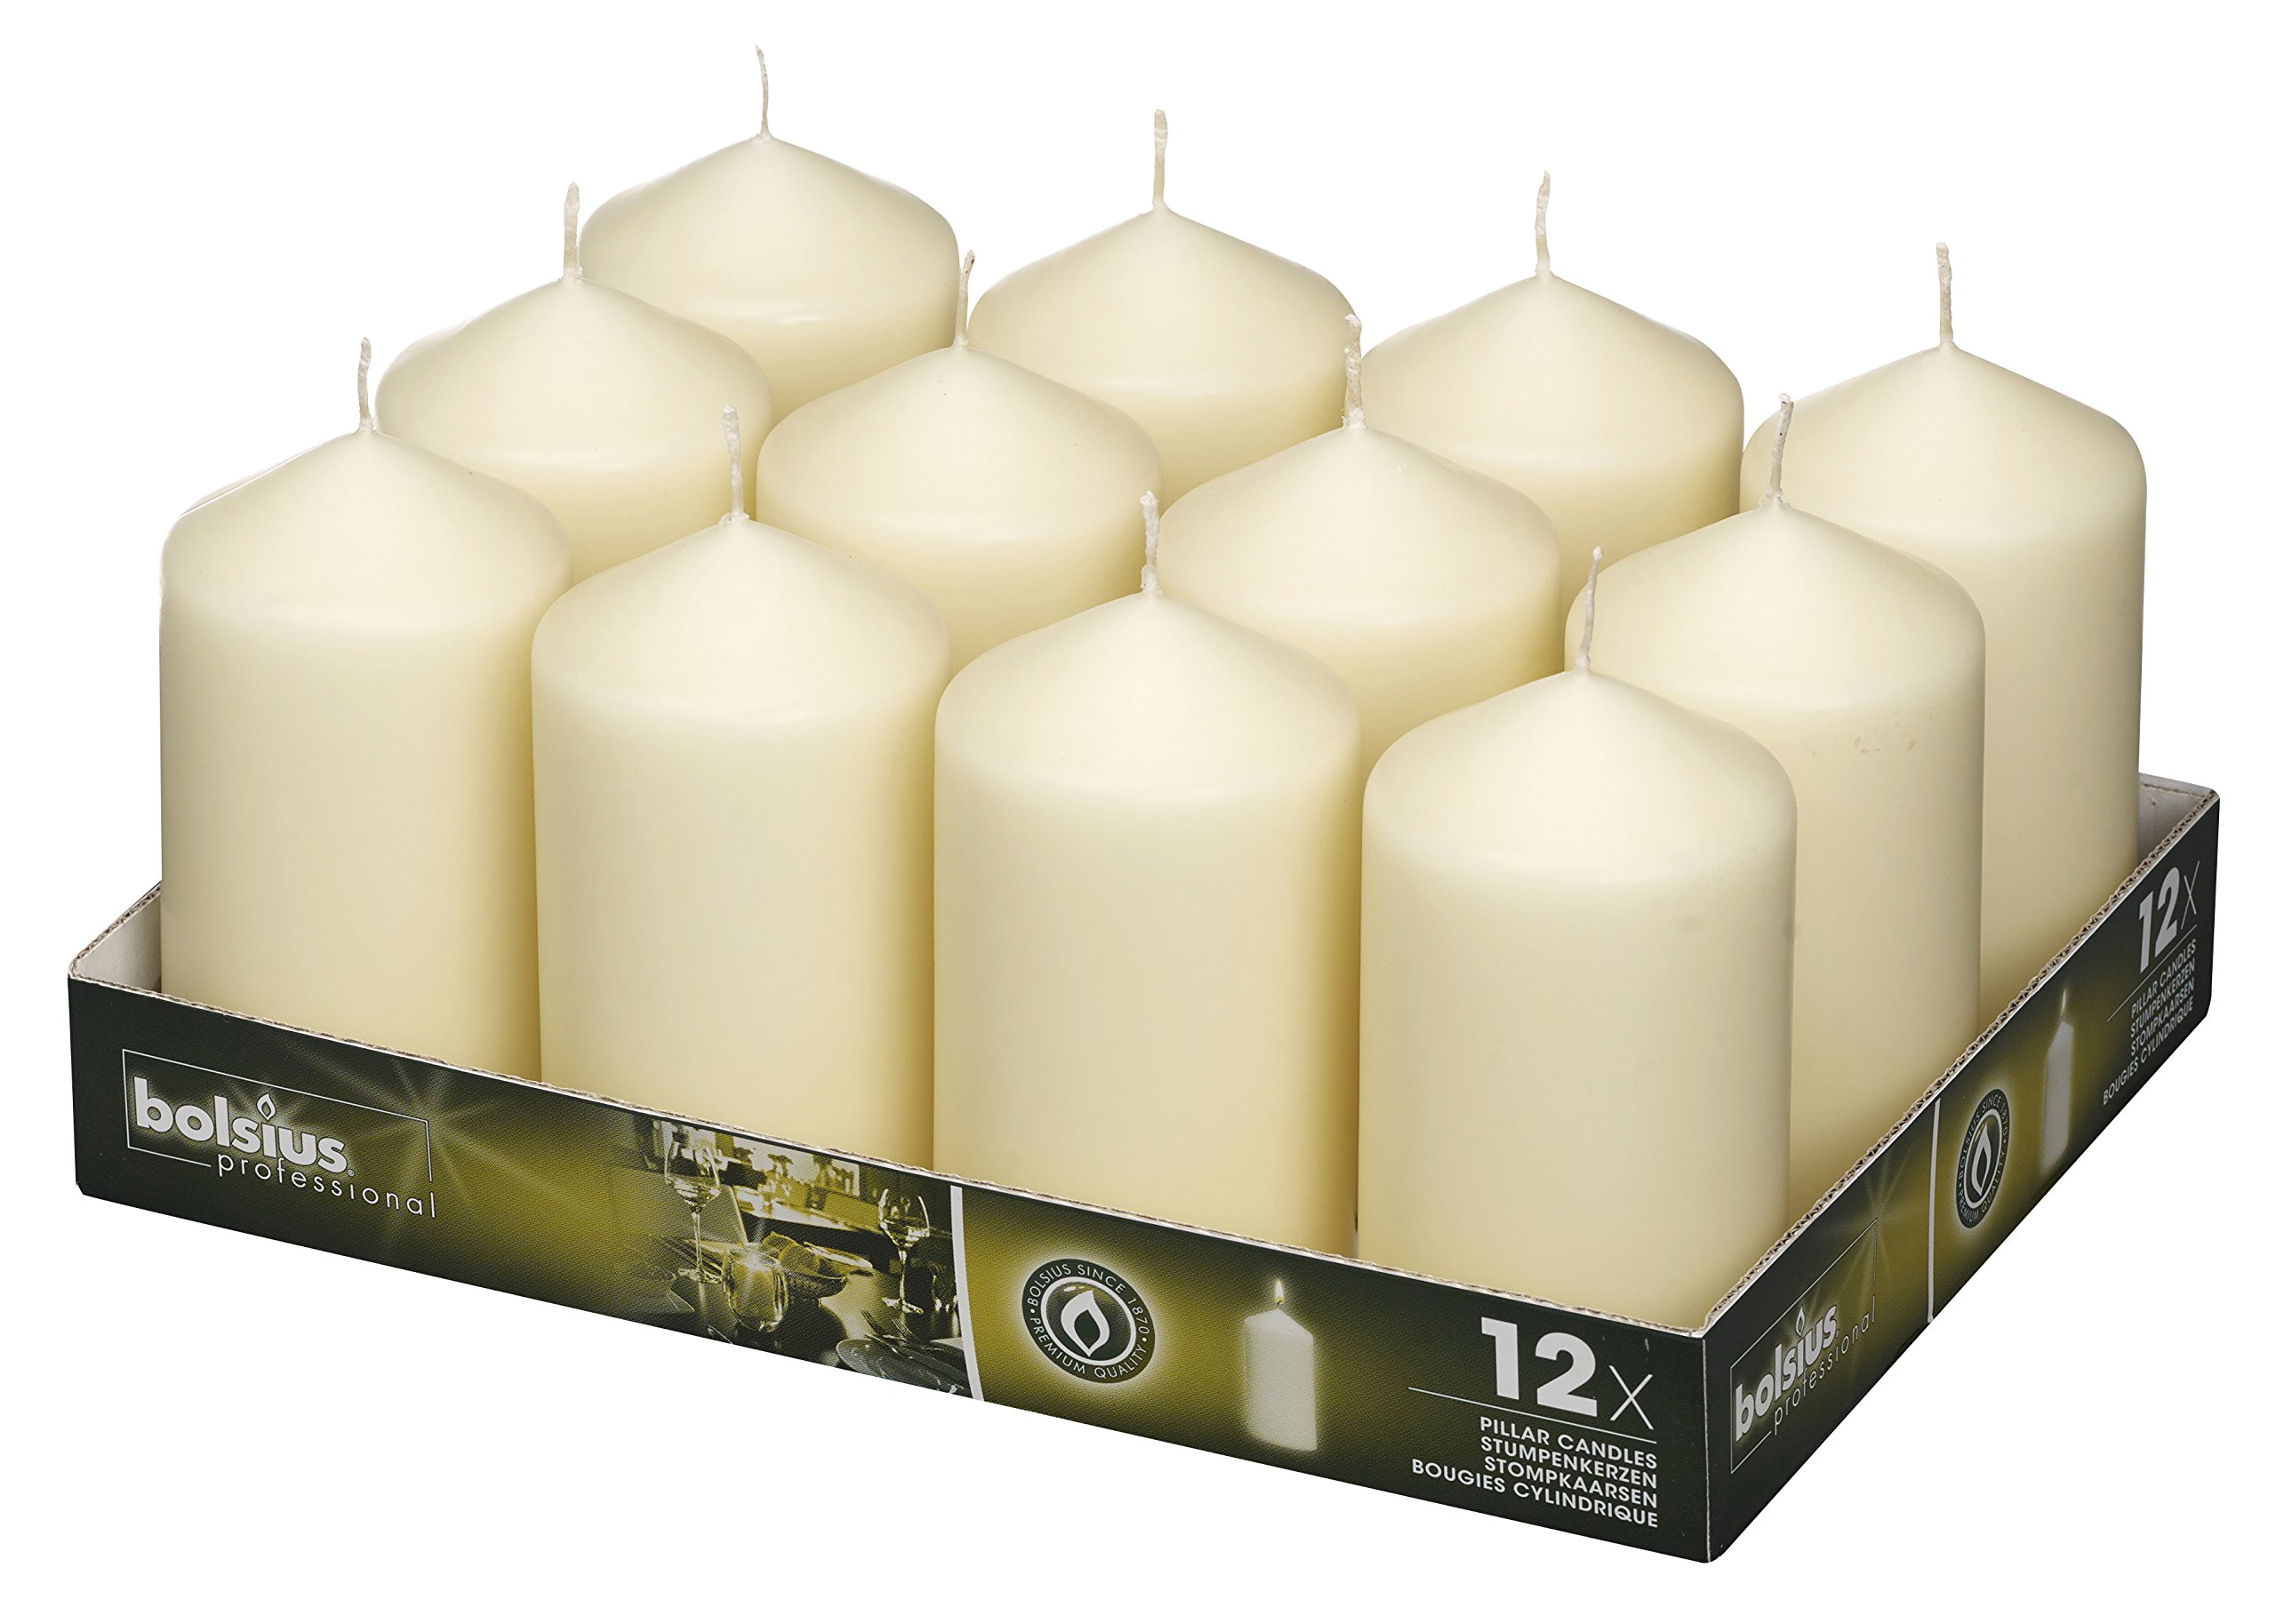 BOLSIUS Set of 12 Ivory Pillar Candles - 40 Long Burning Hours Candle Set - 5-inch x 2.75-inch Dripless Candle - Perfect for Wedding Candles, Parties and Special Occasions by BOLSIUS